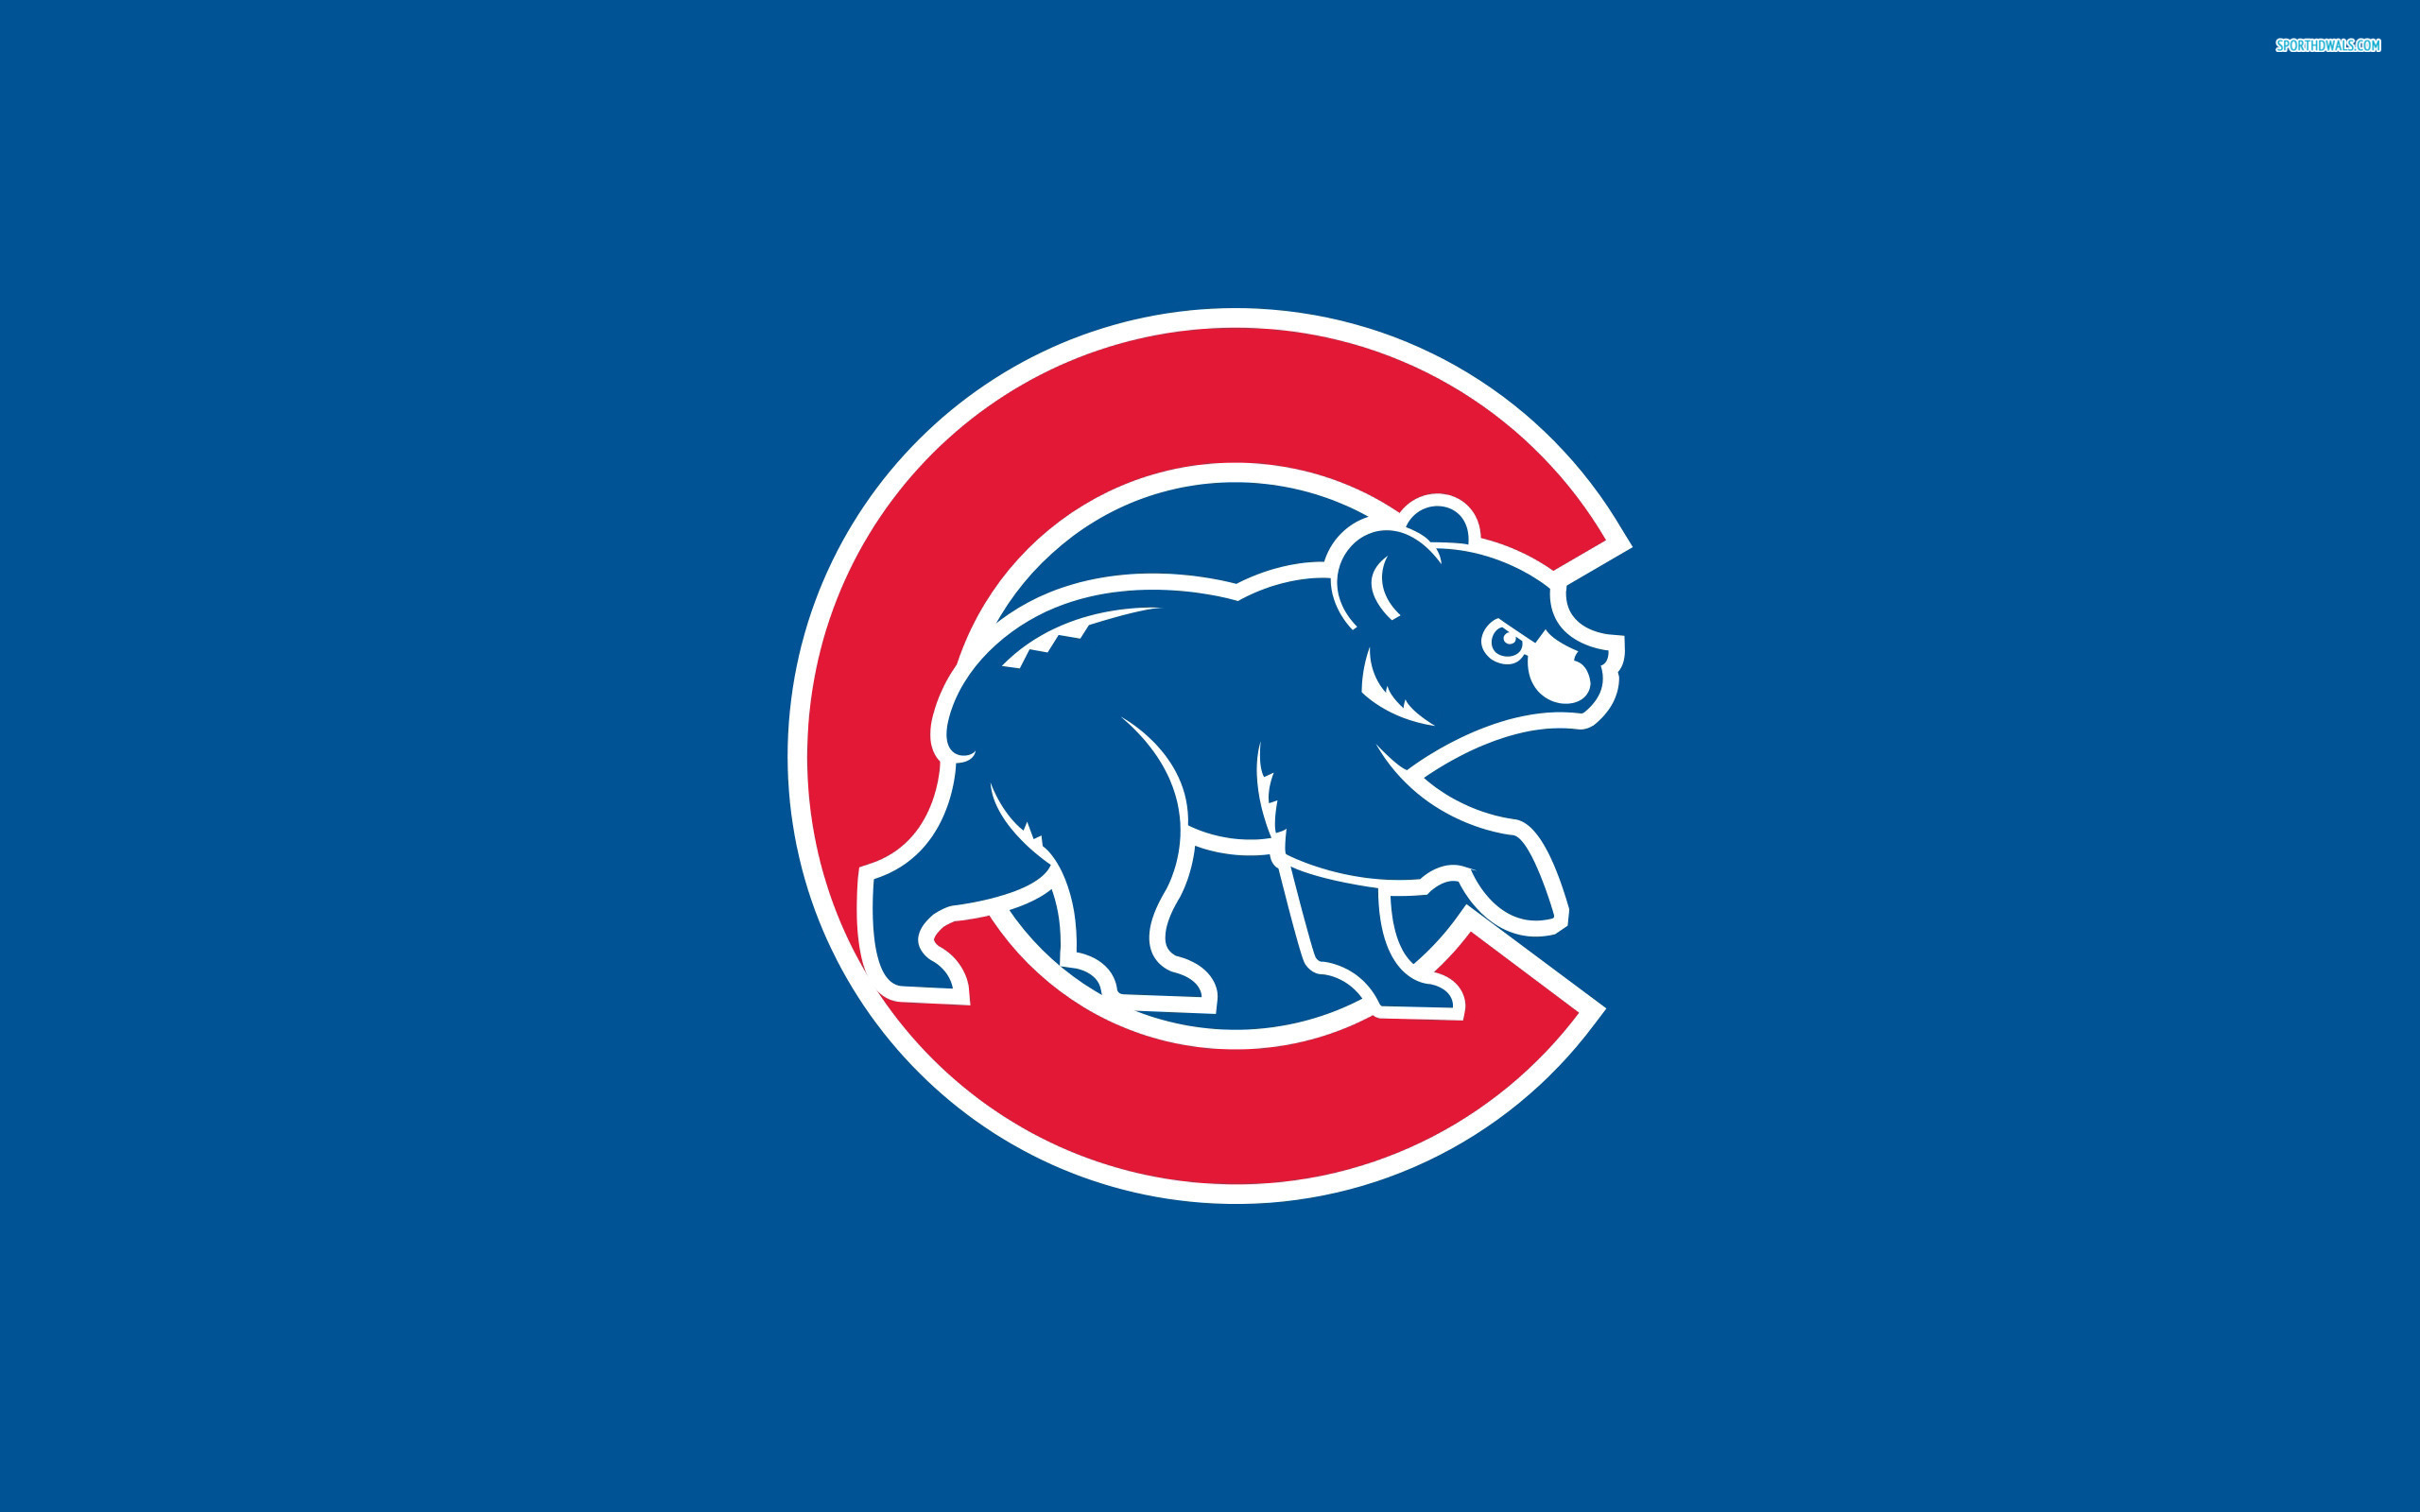 Chicago Cubs wallpaper 2560x1600 69229 2560x1600